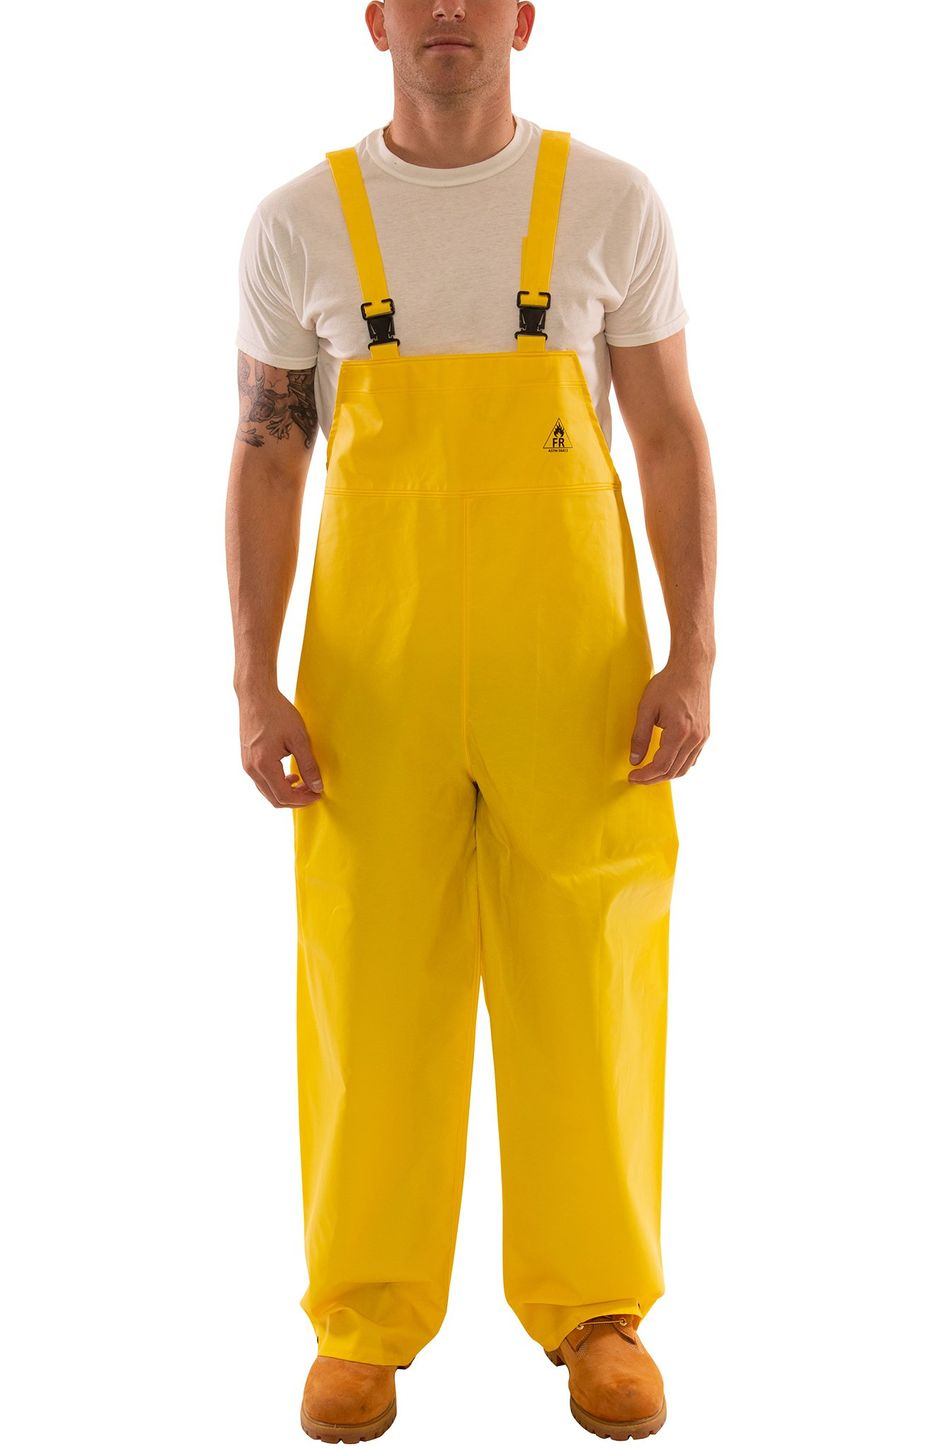 tingley-o56007-durascrim-fire-resistant-overalls-pvc-coated-chemical-resistant-with-plain-front-front.jpg